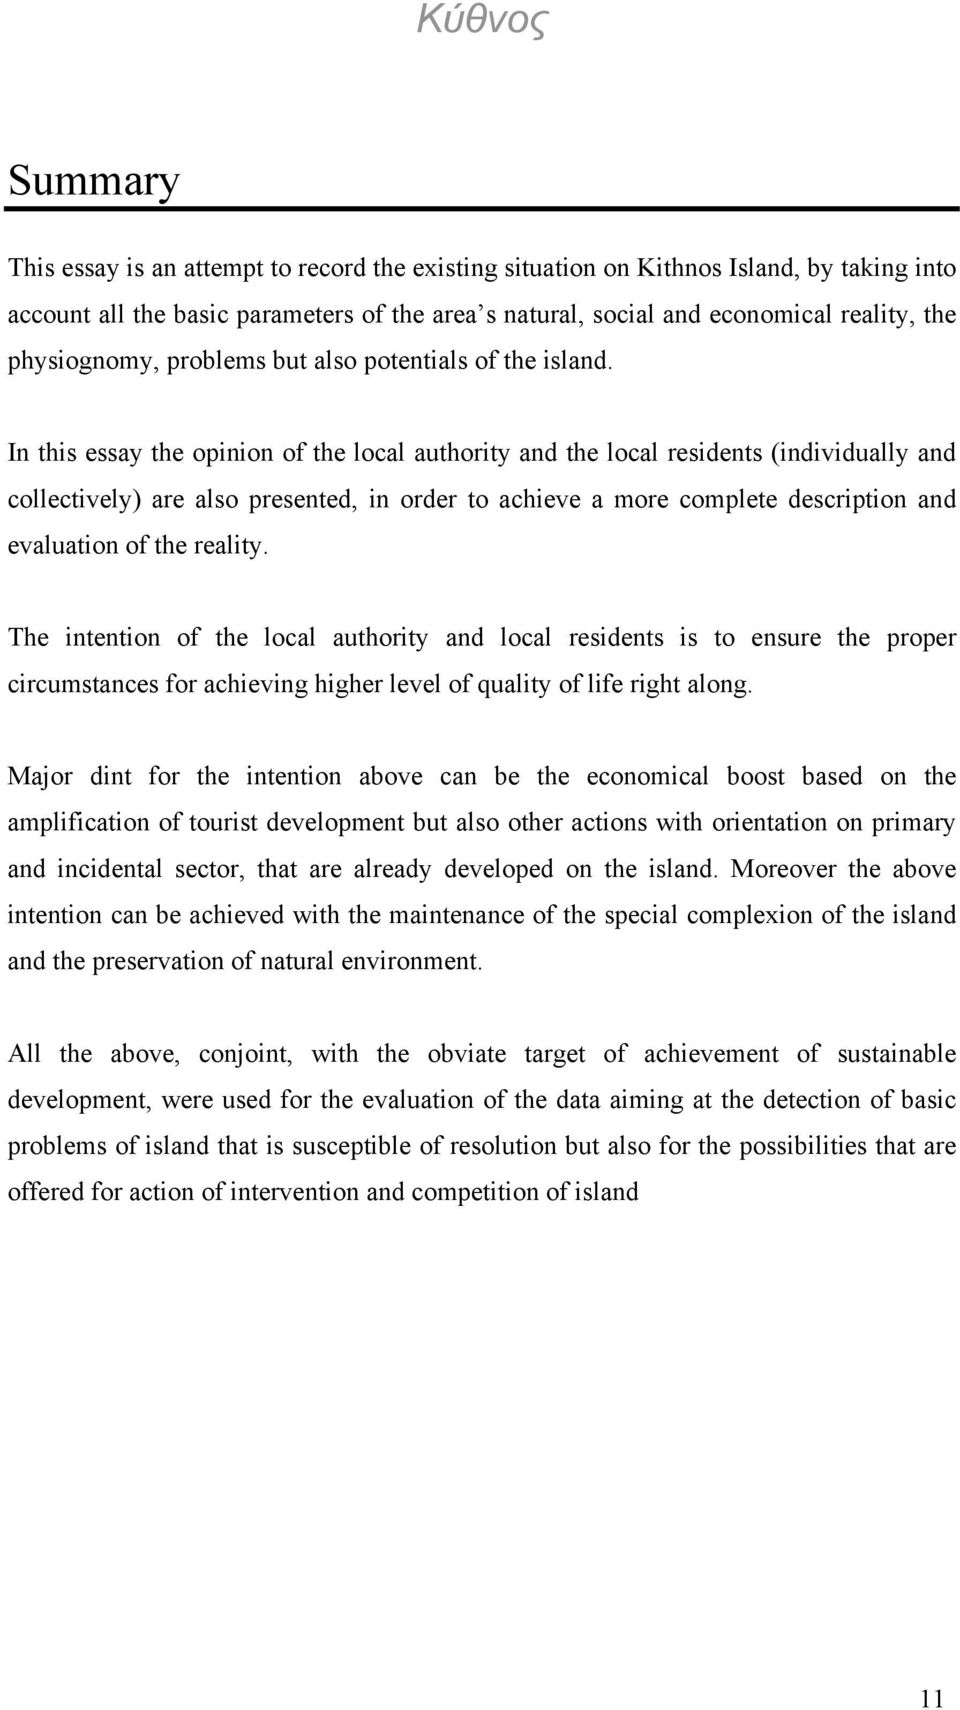 In this essay the opinion of the local authority and the local residents (individually and collectively) are also presented, in order to achieve a more complete description and evaluation of the